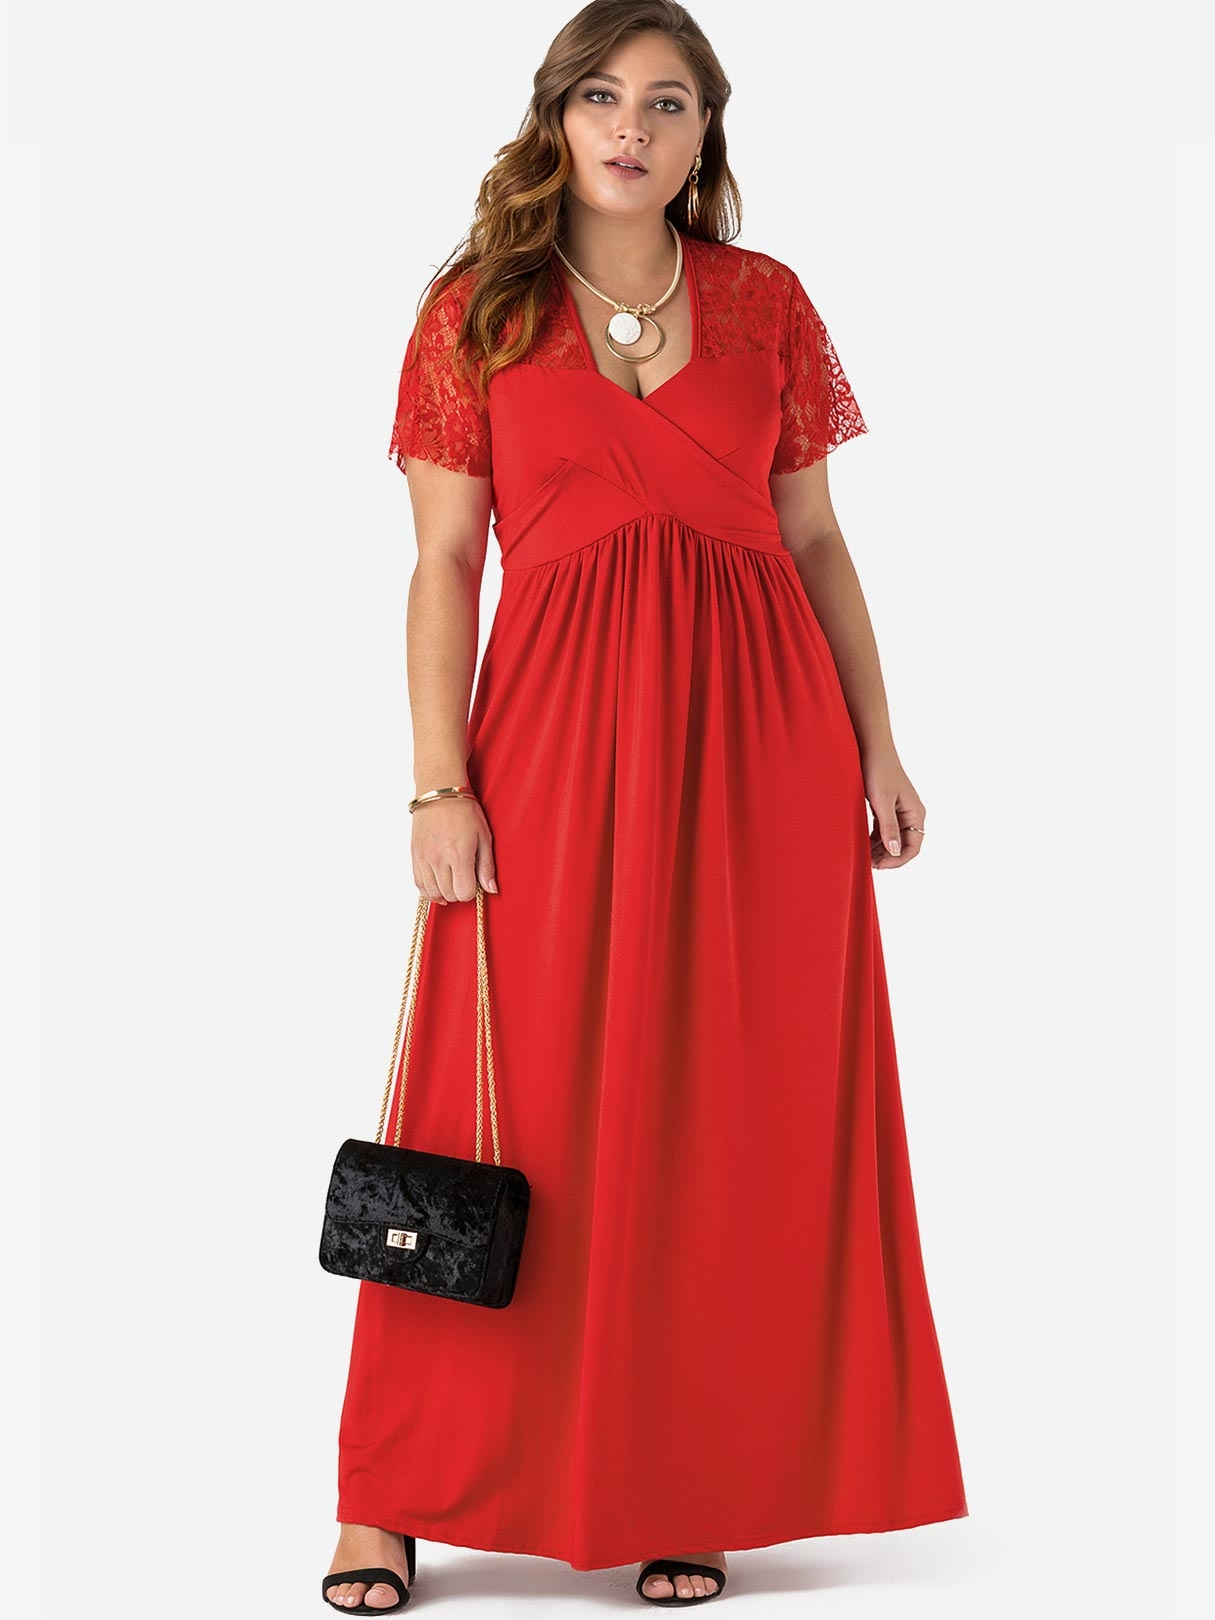 b3c559600e3 Plus Size Red Stretch Lace Insert Maxi Dress - US 29.95 -YOINS